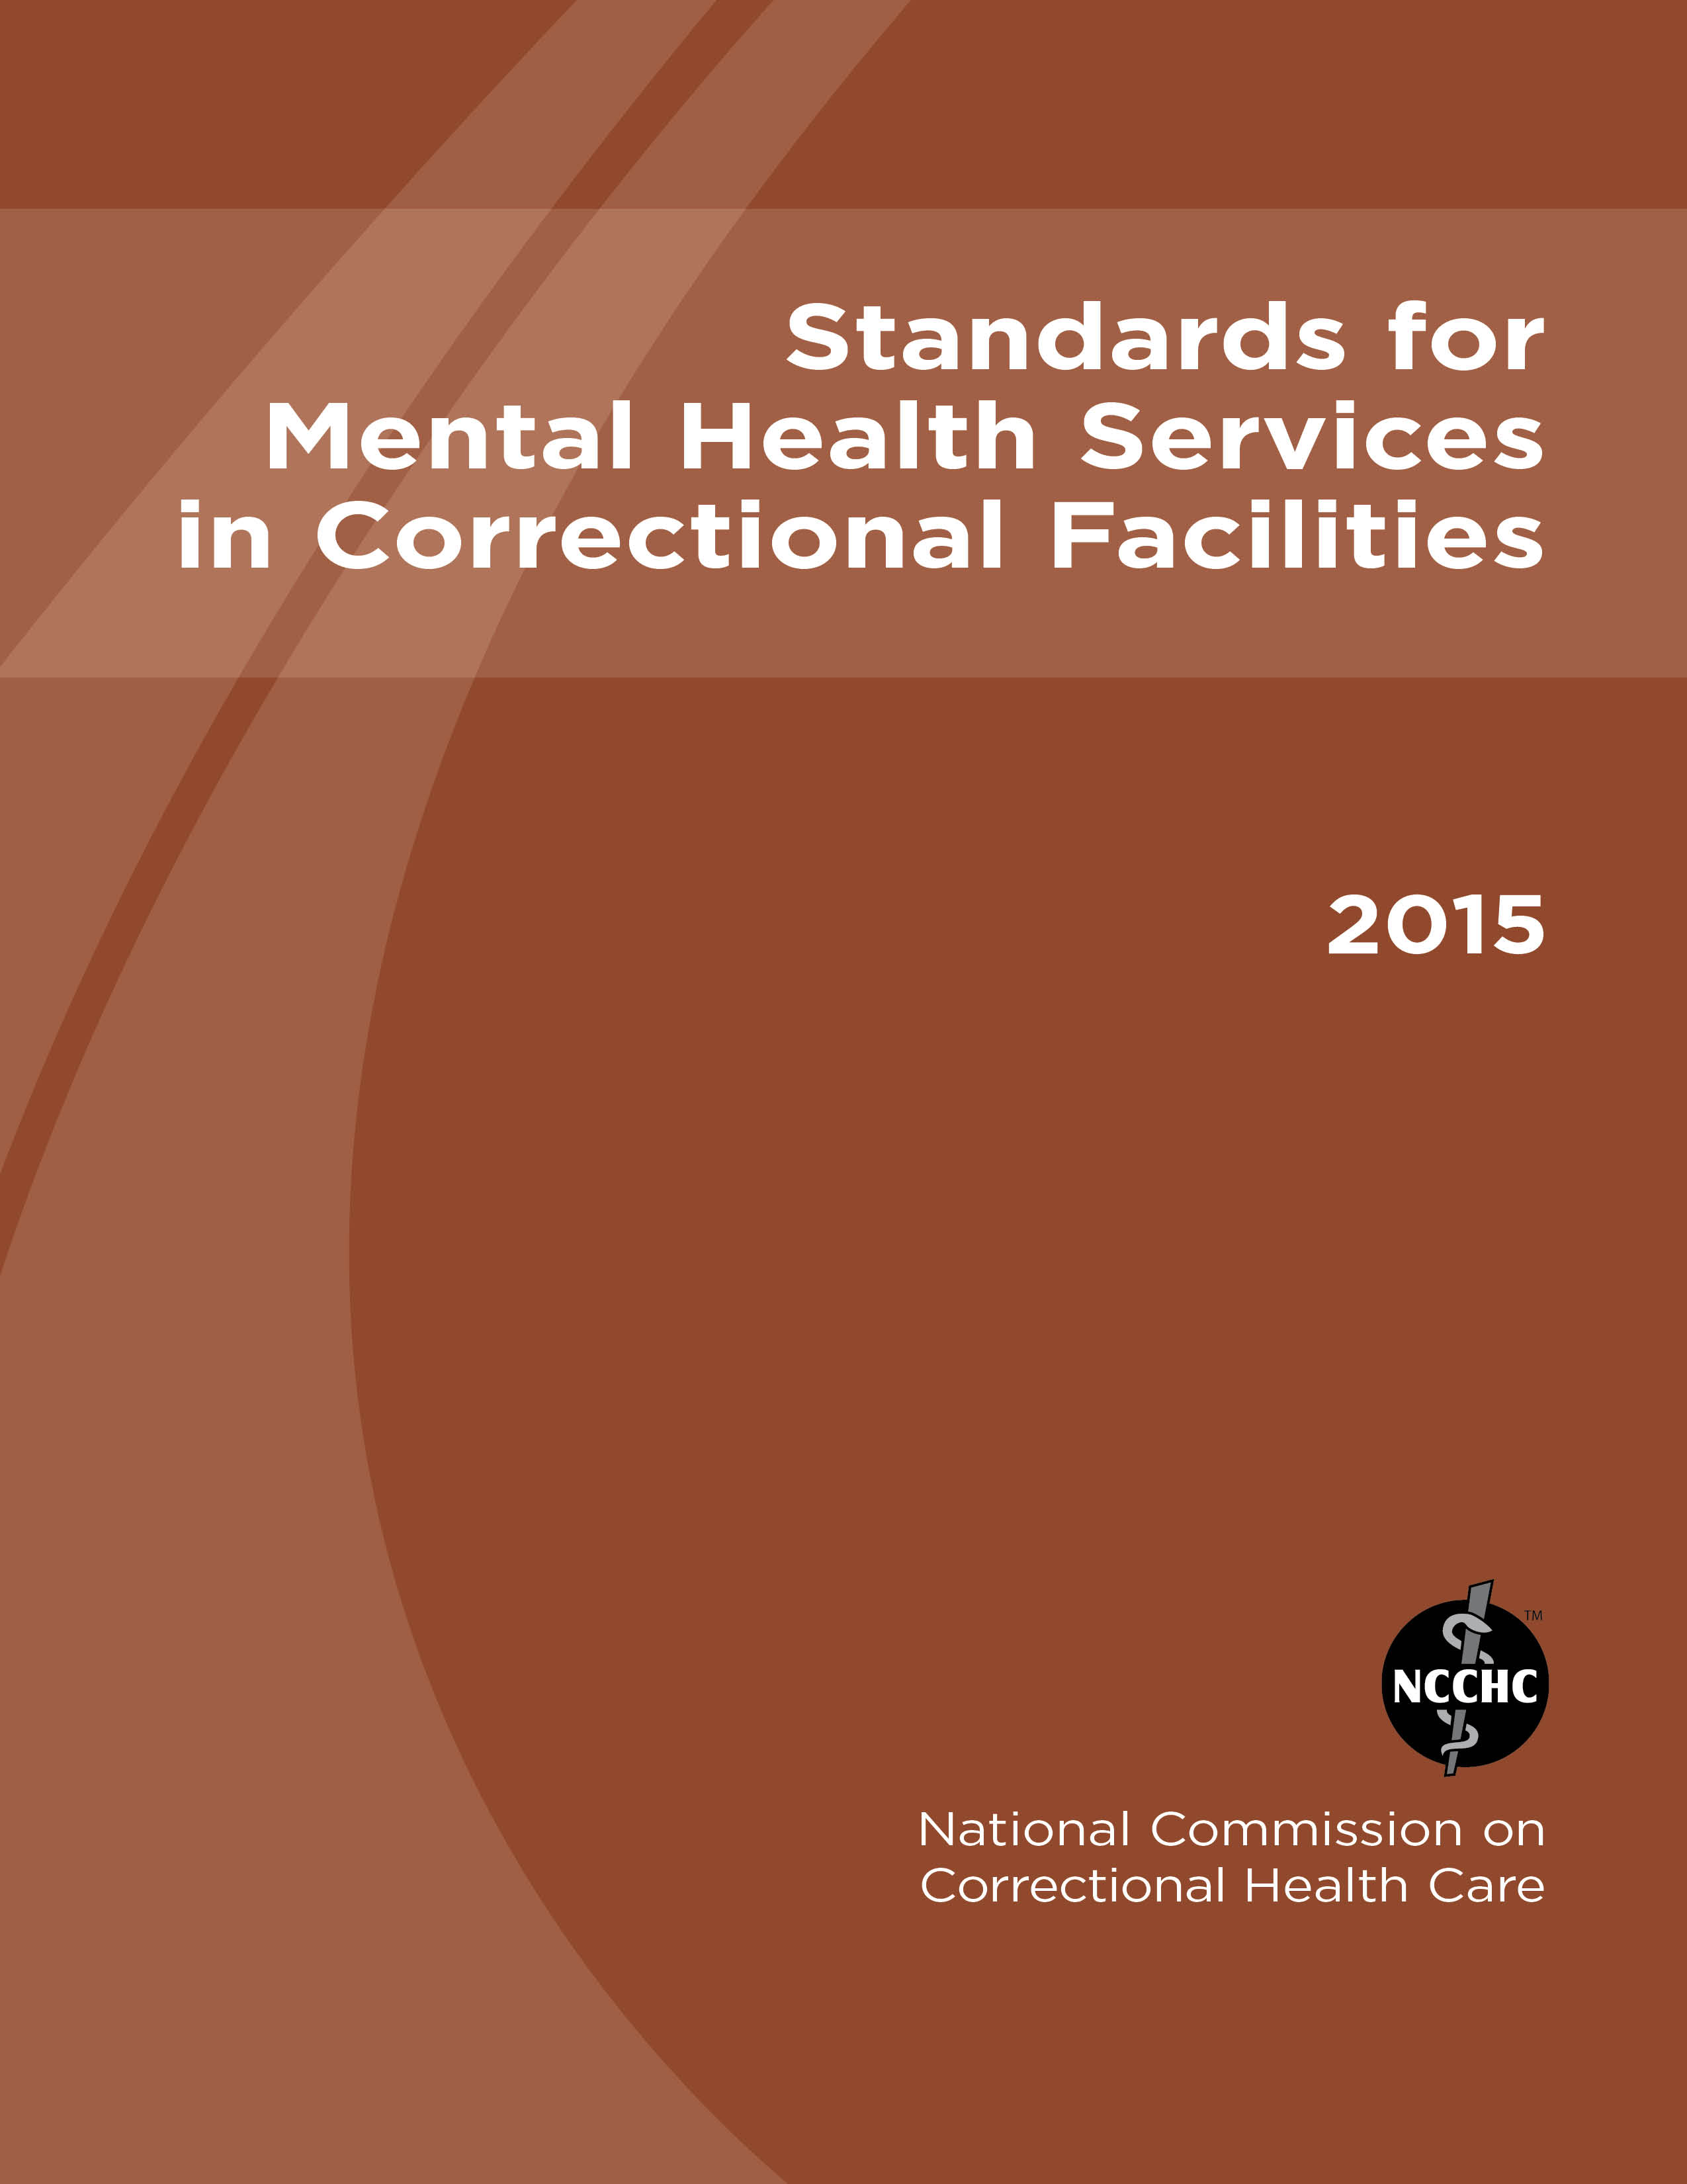 Standards for Mental Health Services in Correctional Facilities (2015)